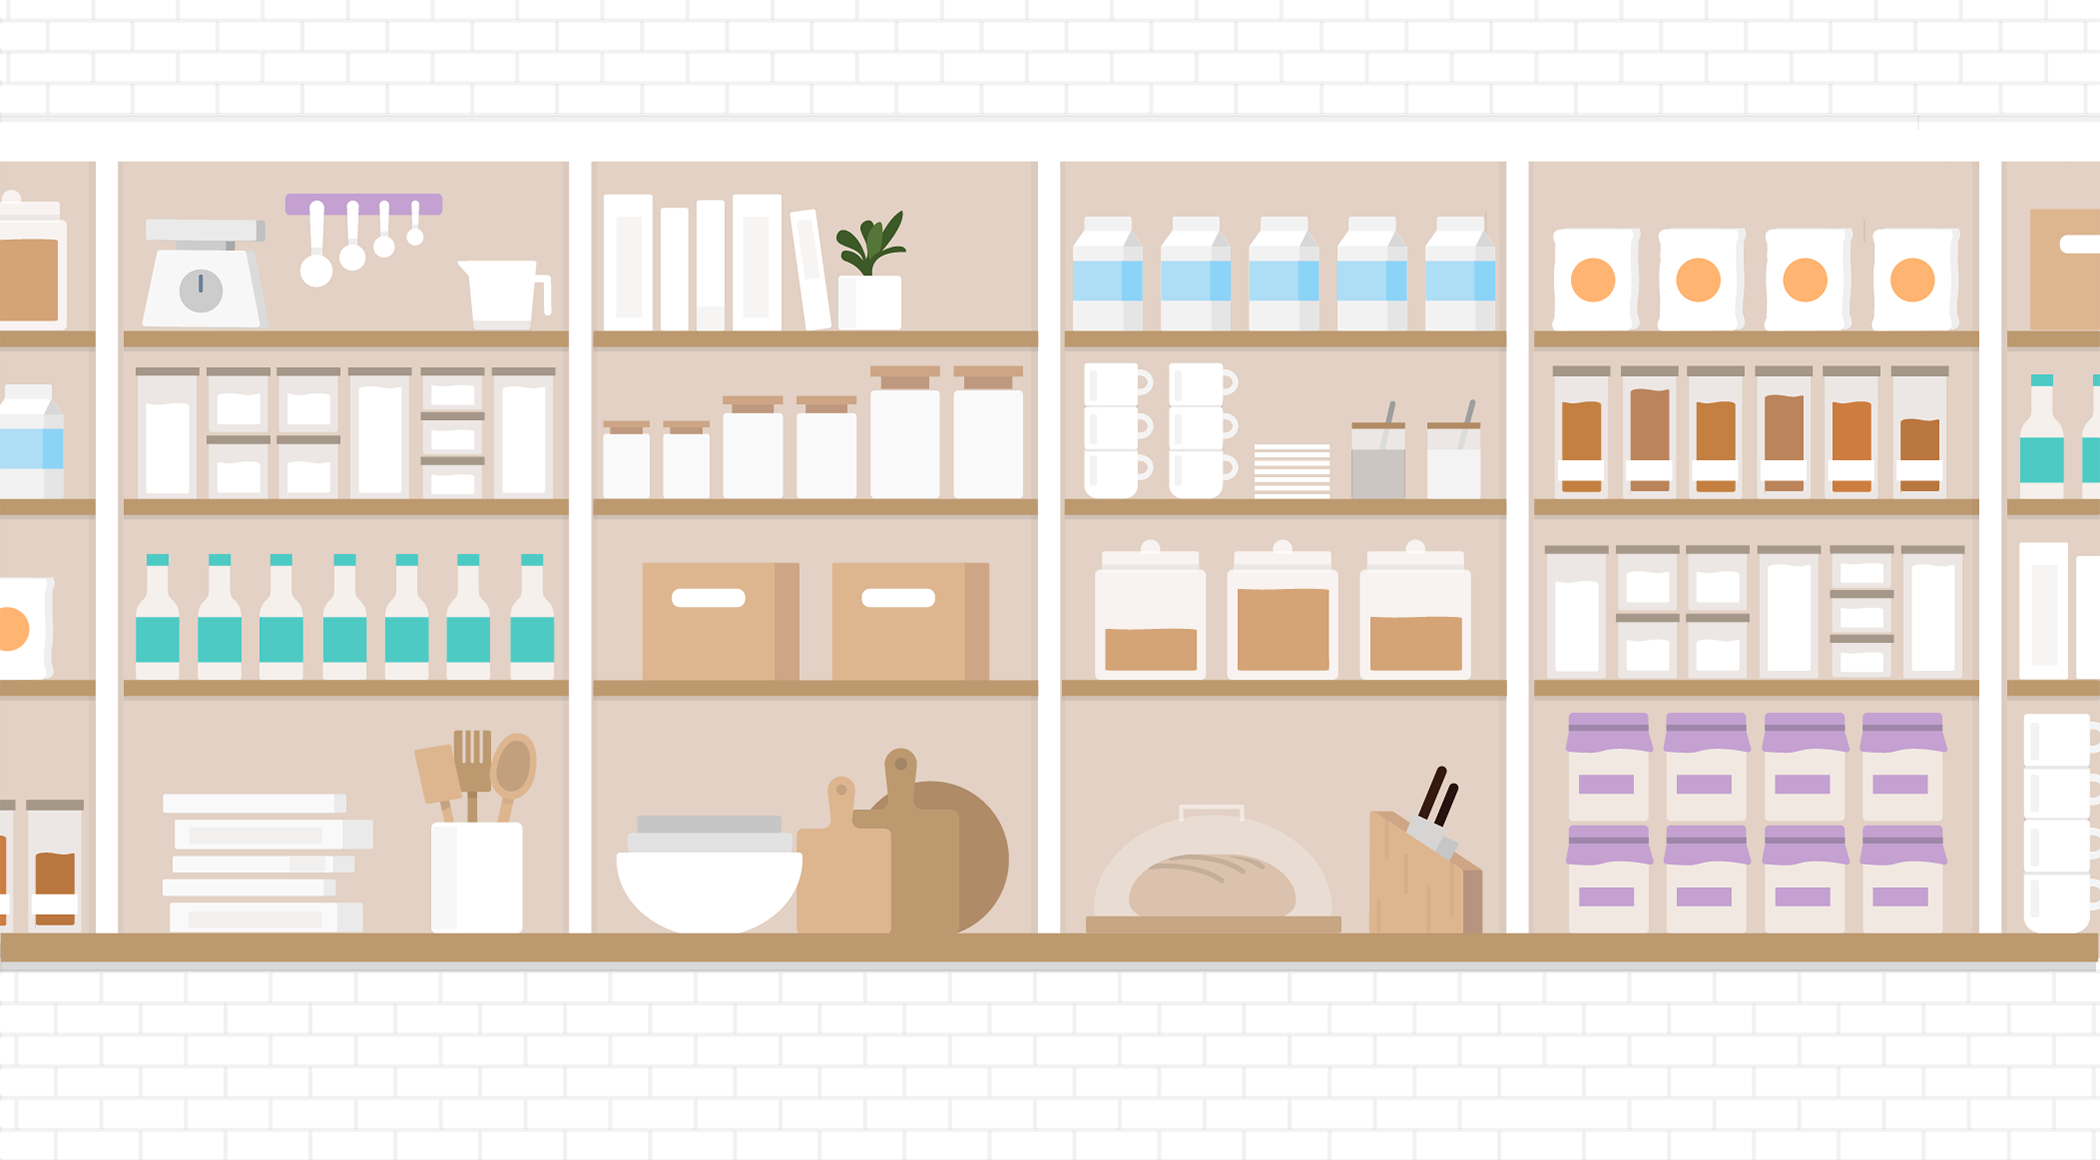 EDA is like a perfectly organized and fully-stocked pantry.